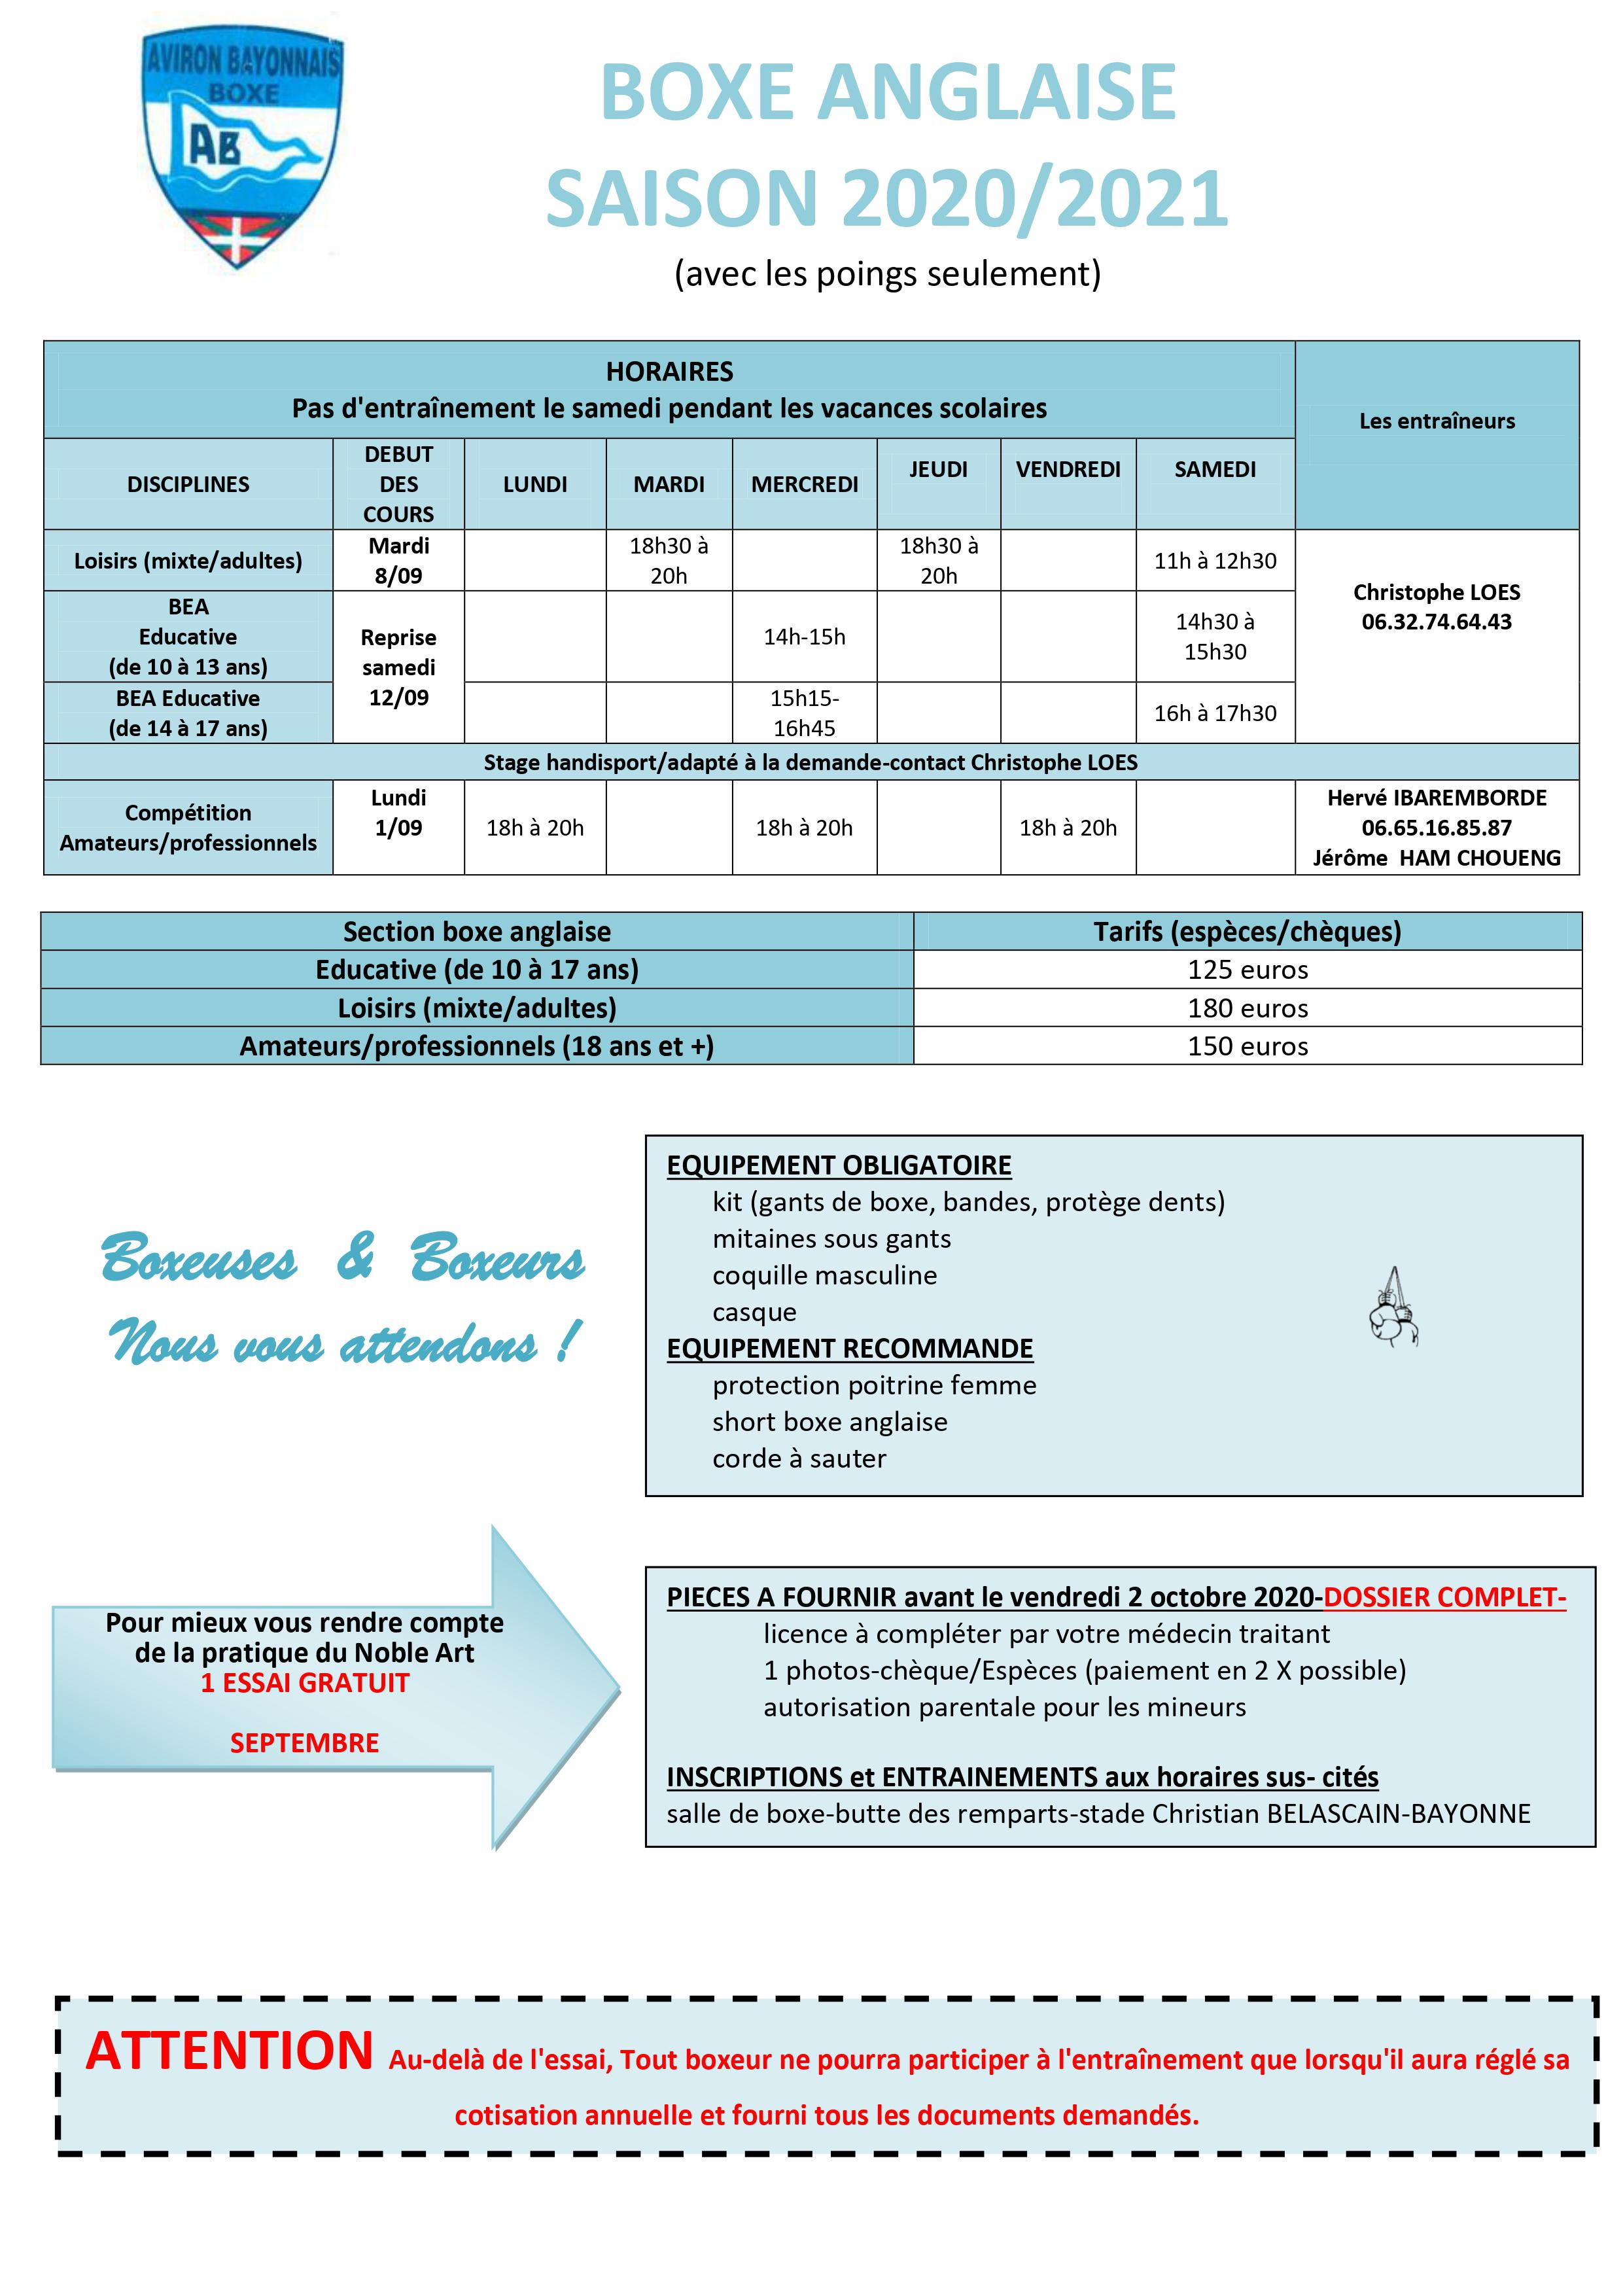 informations%20section%20boxe%20anglaise%20AB%202020%20&%202021.jpg